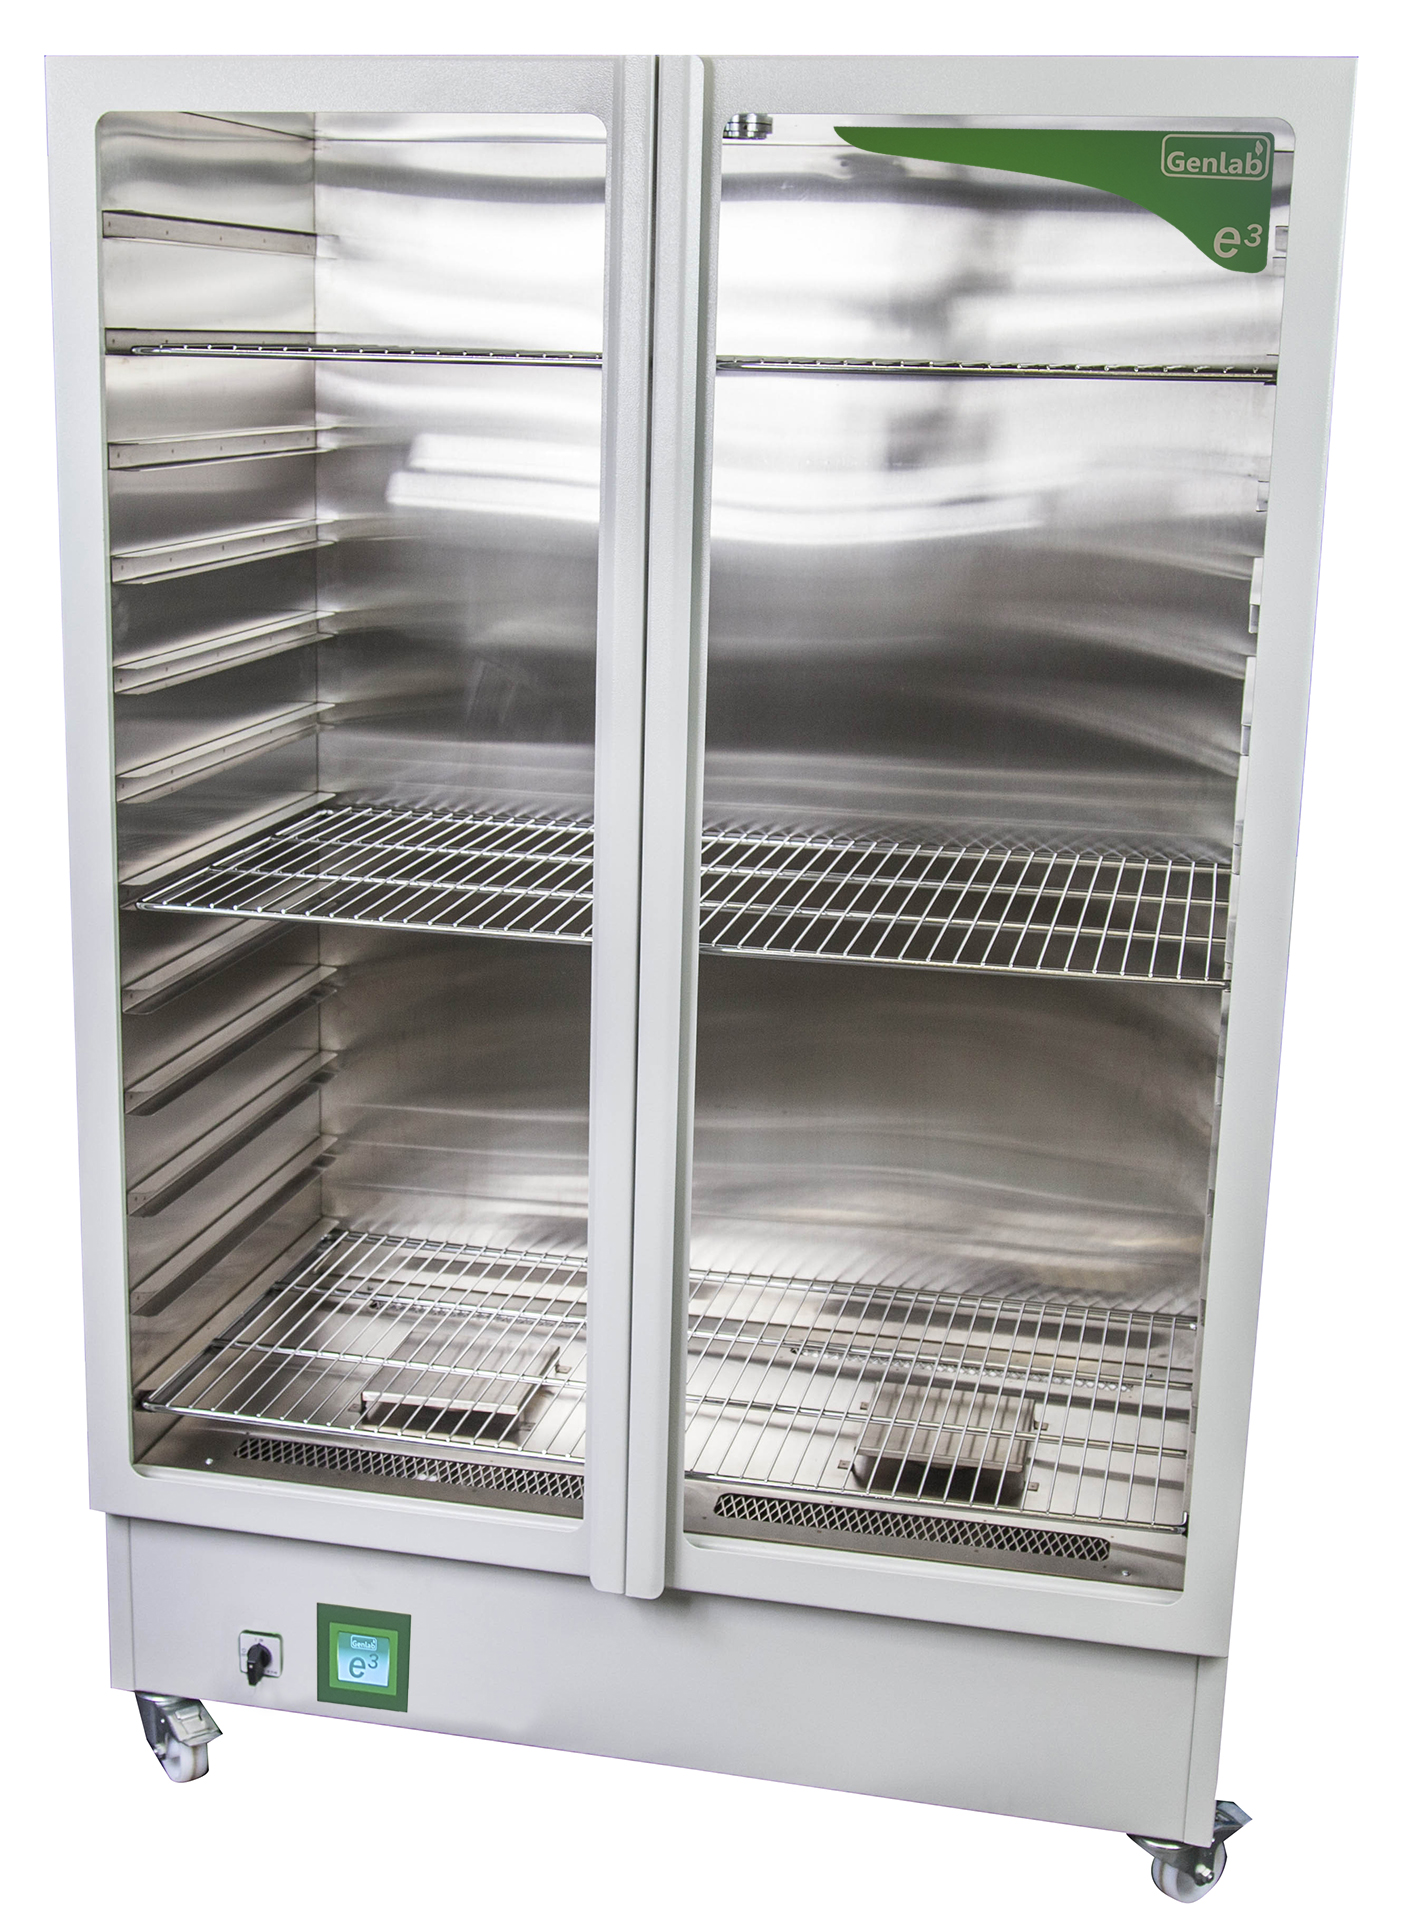 lc-multi-purpose-ovens2.jpg